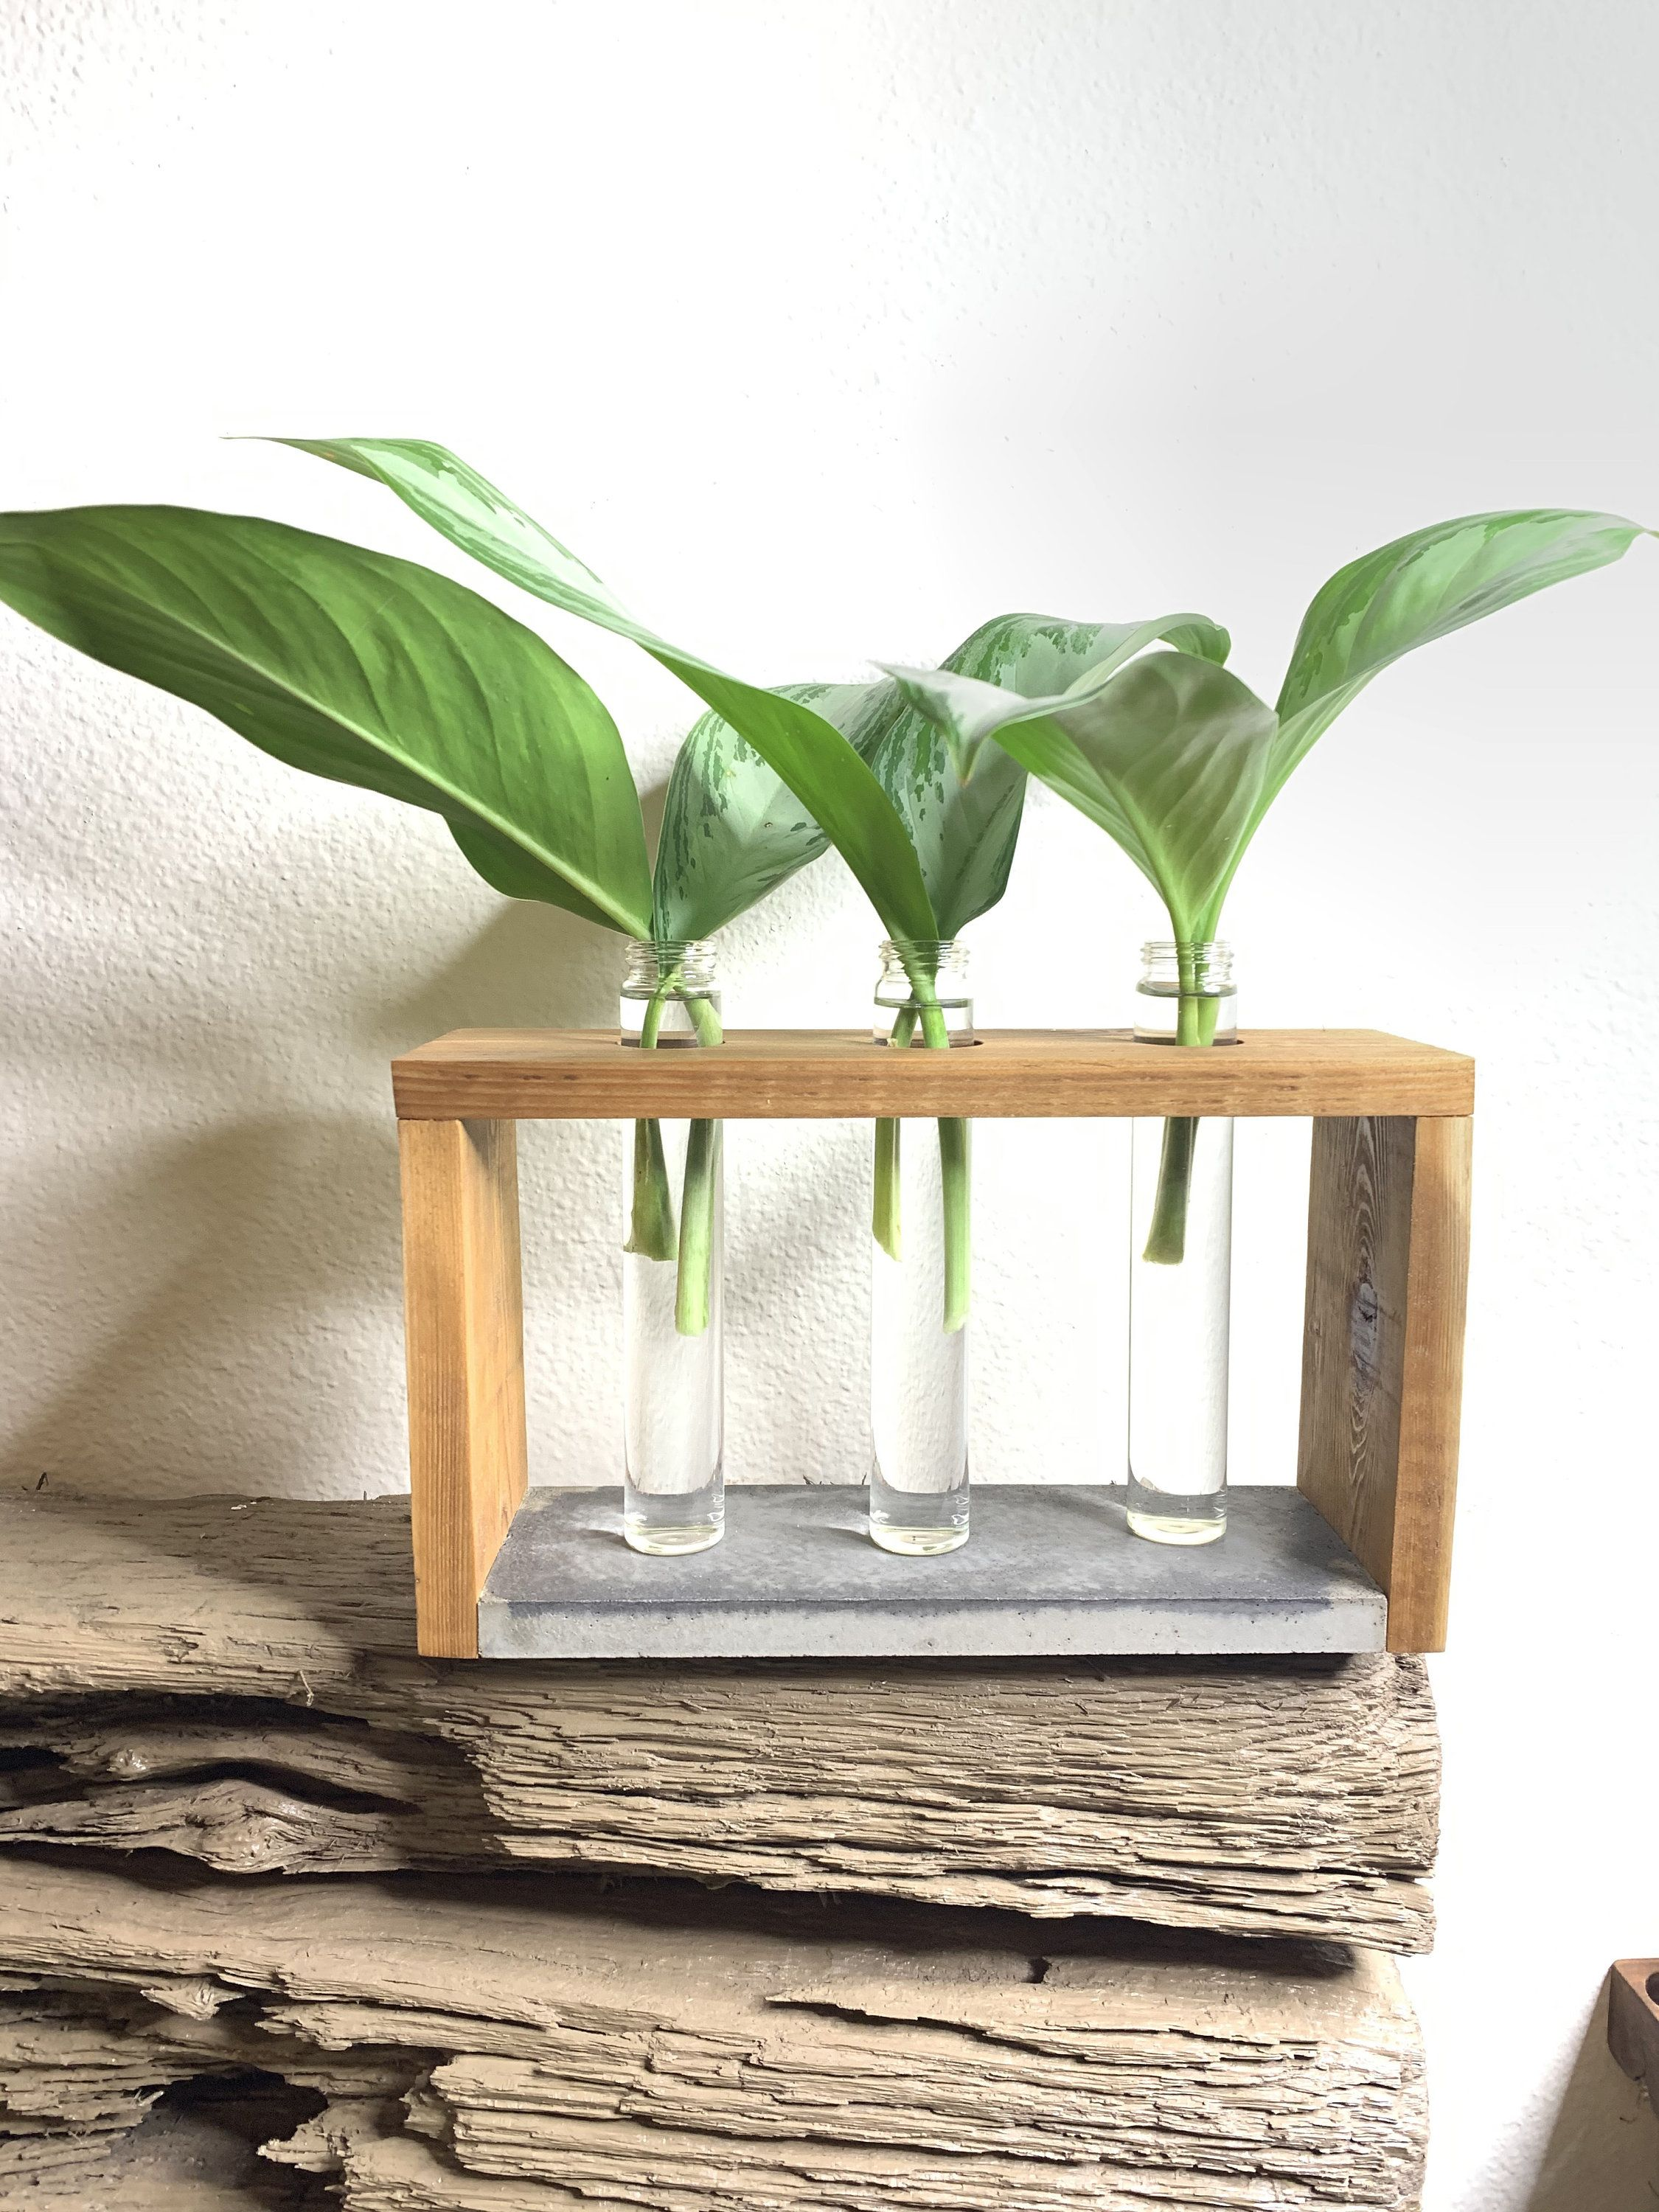 indoor plant stand with pot plant propagation station for succulents pots holdet Mini planter for plant propagation with teracotta pots